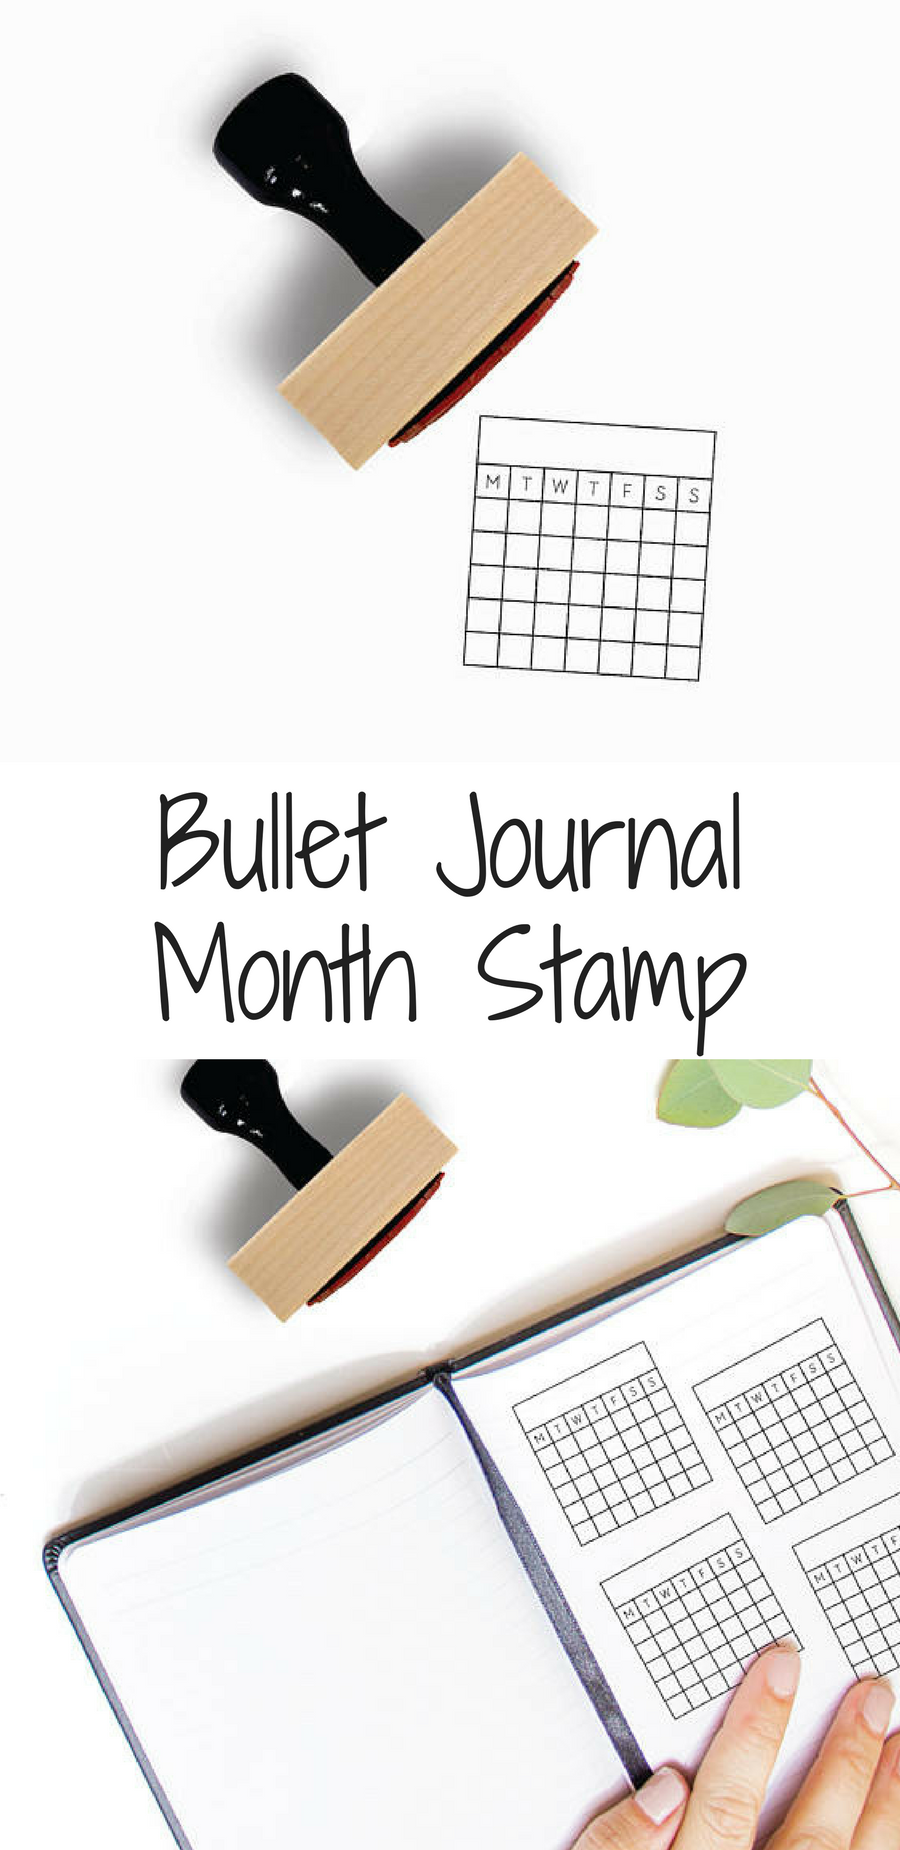 Perpetual Calendar Or Habit Tracker Stamp For Your Bullet Journal Planner Minimalistic And Just What You Were Looking So Dont Have To Draw